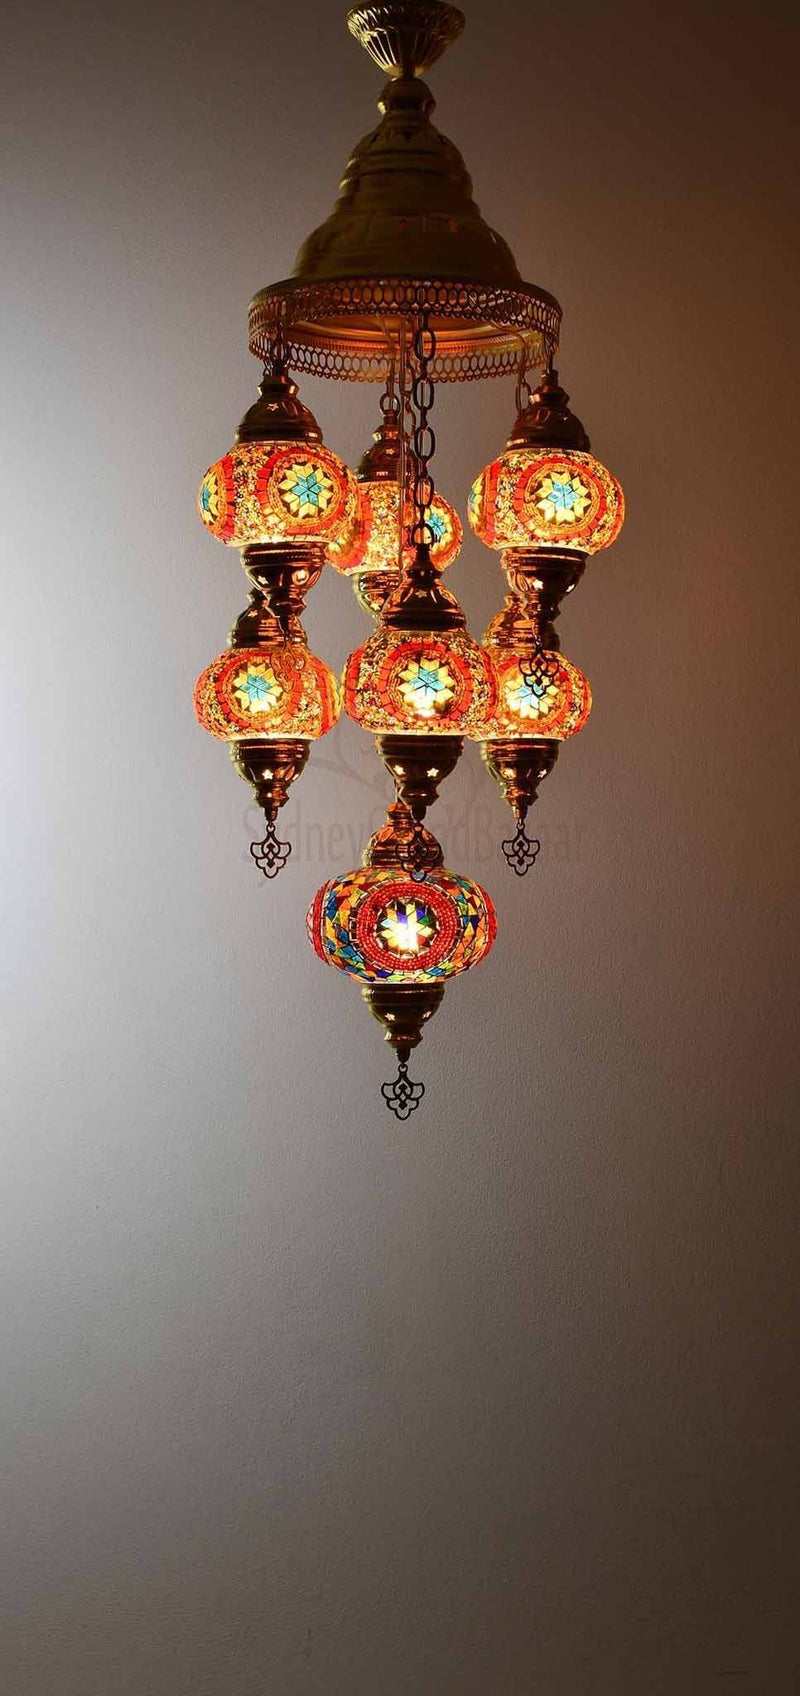 Turkish Mosaic Pendant Light 7 Globes in Gold Lighting Sydney Grand Bazaar Multicolour 1